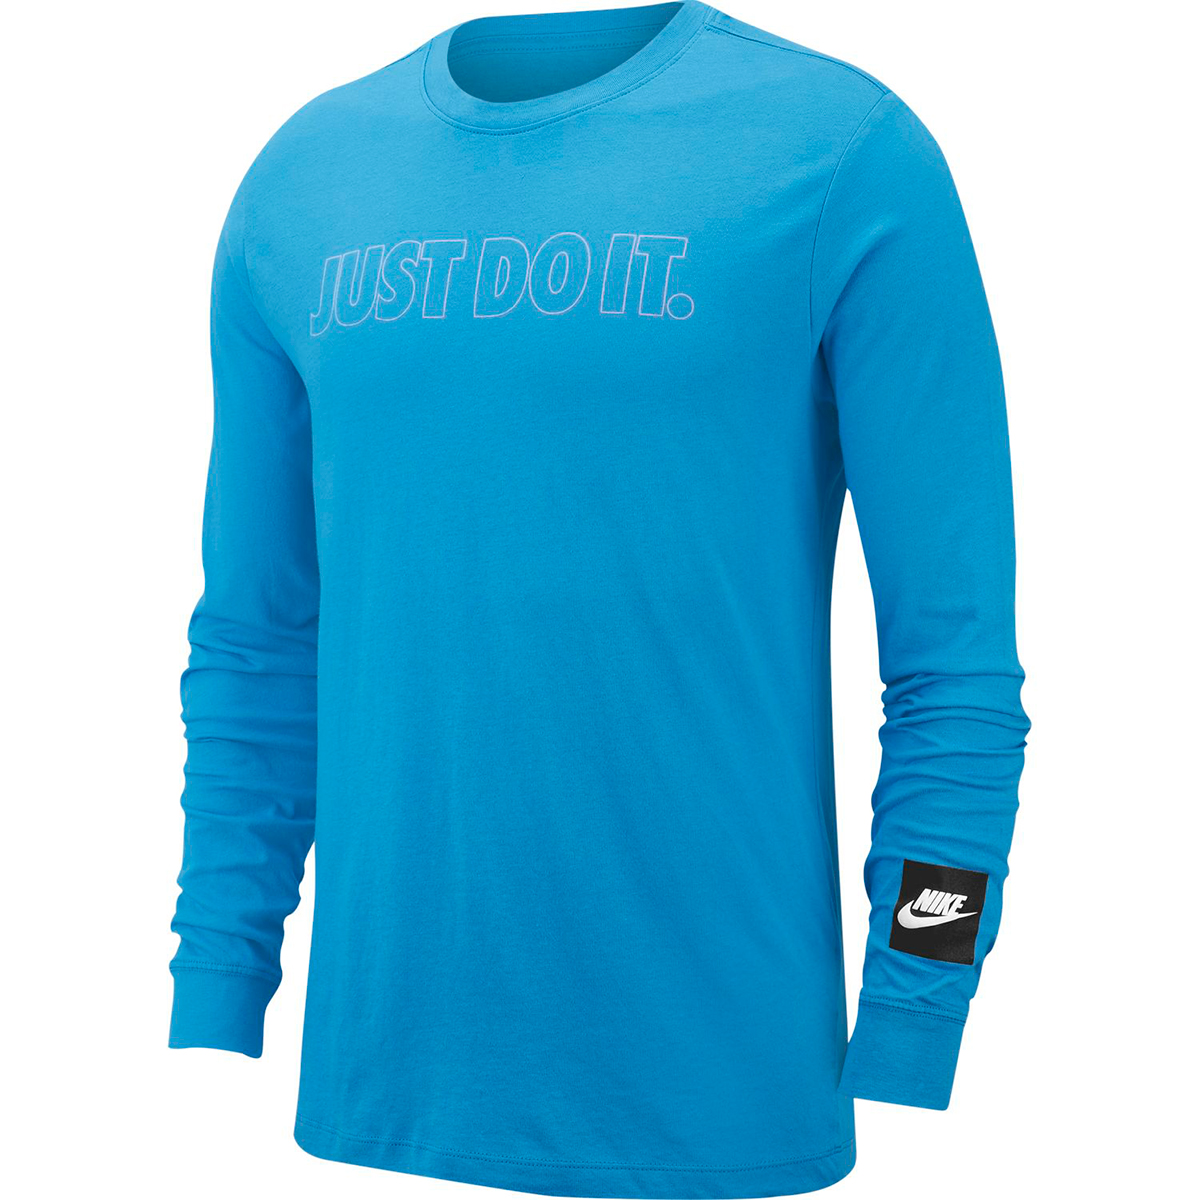 Nike Men's Long-Sleeve Just Do It Outline Tee - Blue, XL